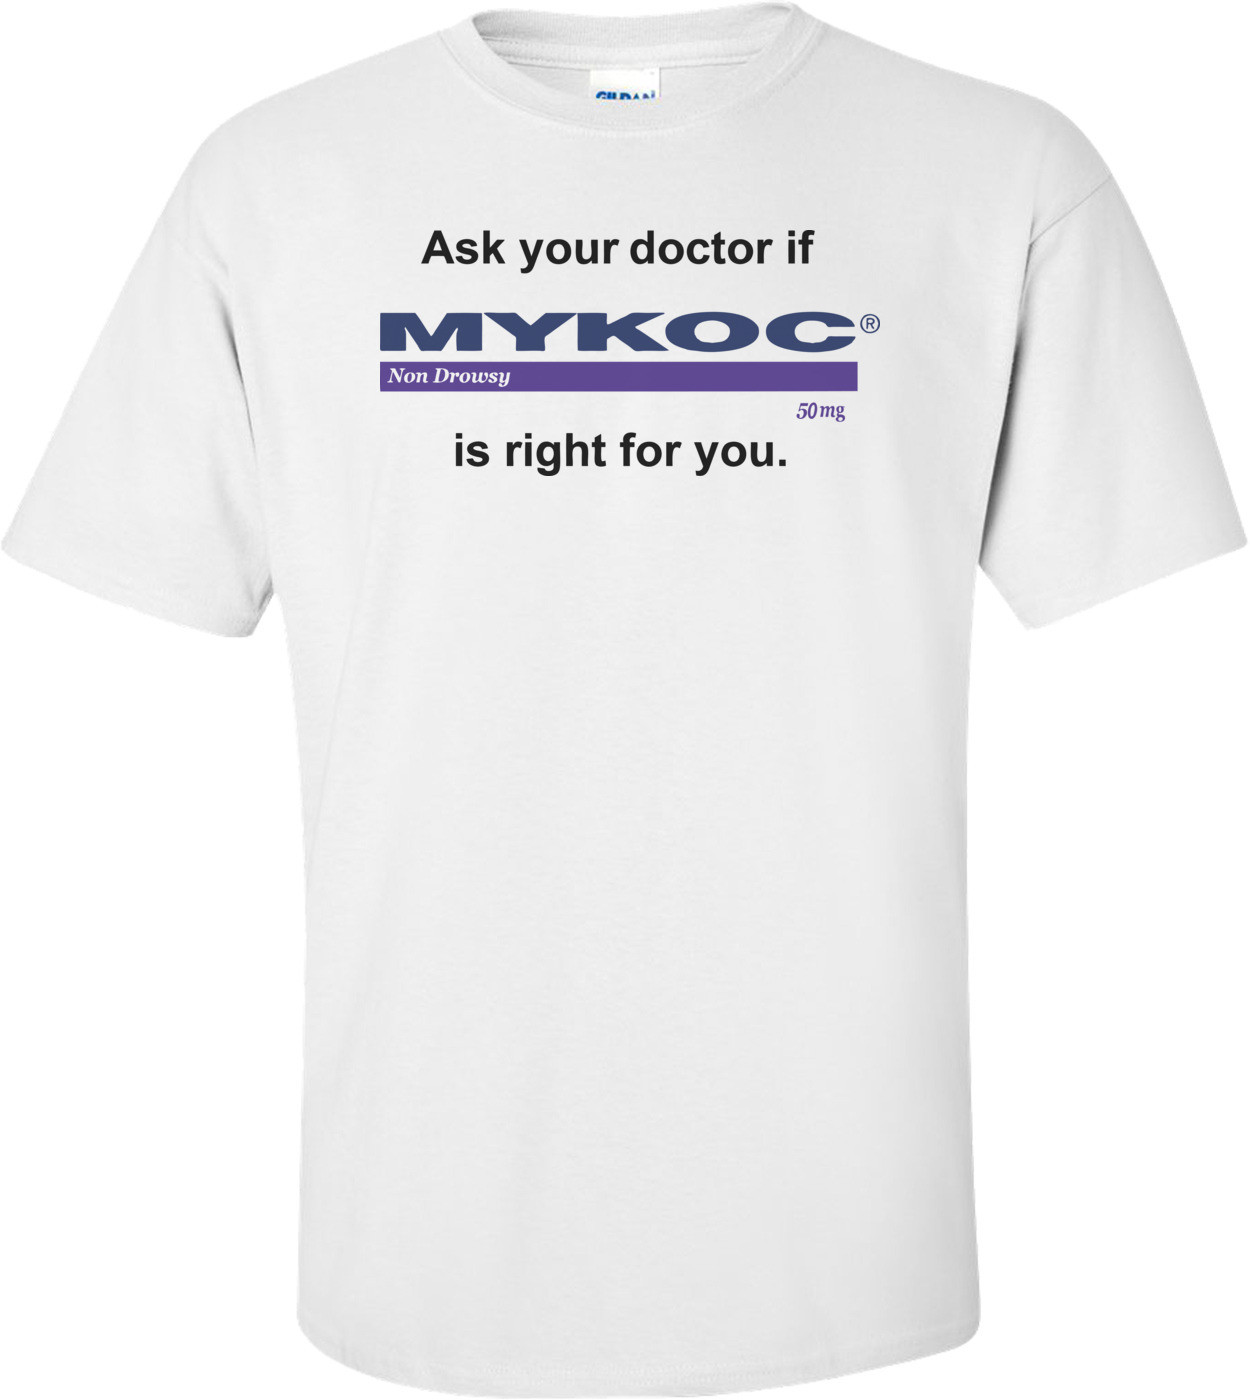 Ask your doctor if Mykoc is right for you. T-shirt